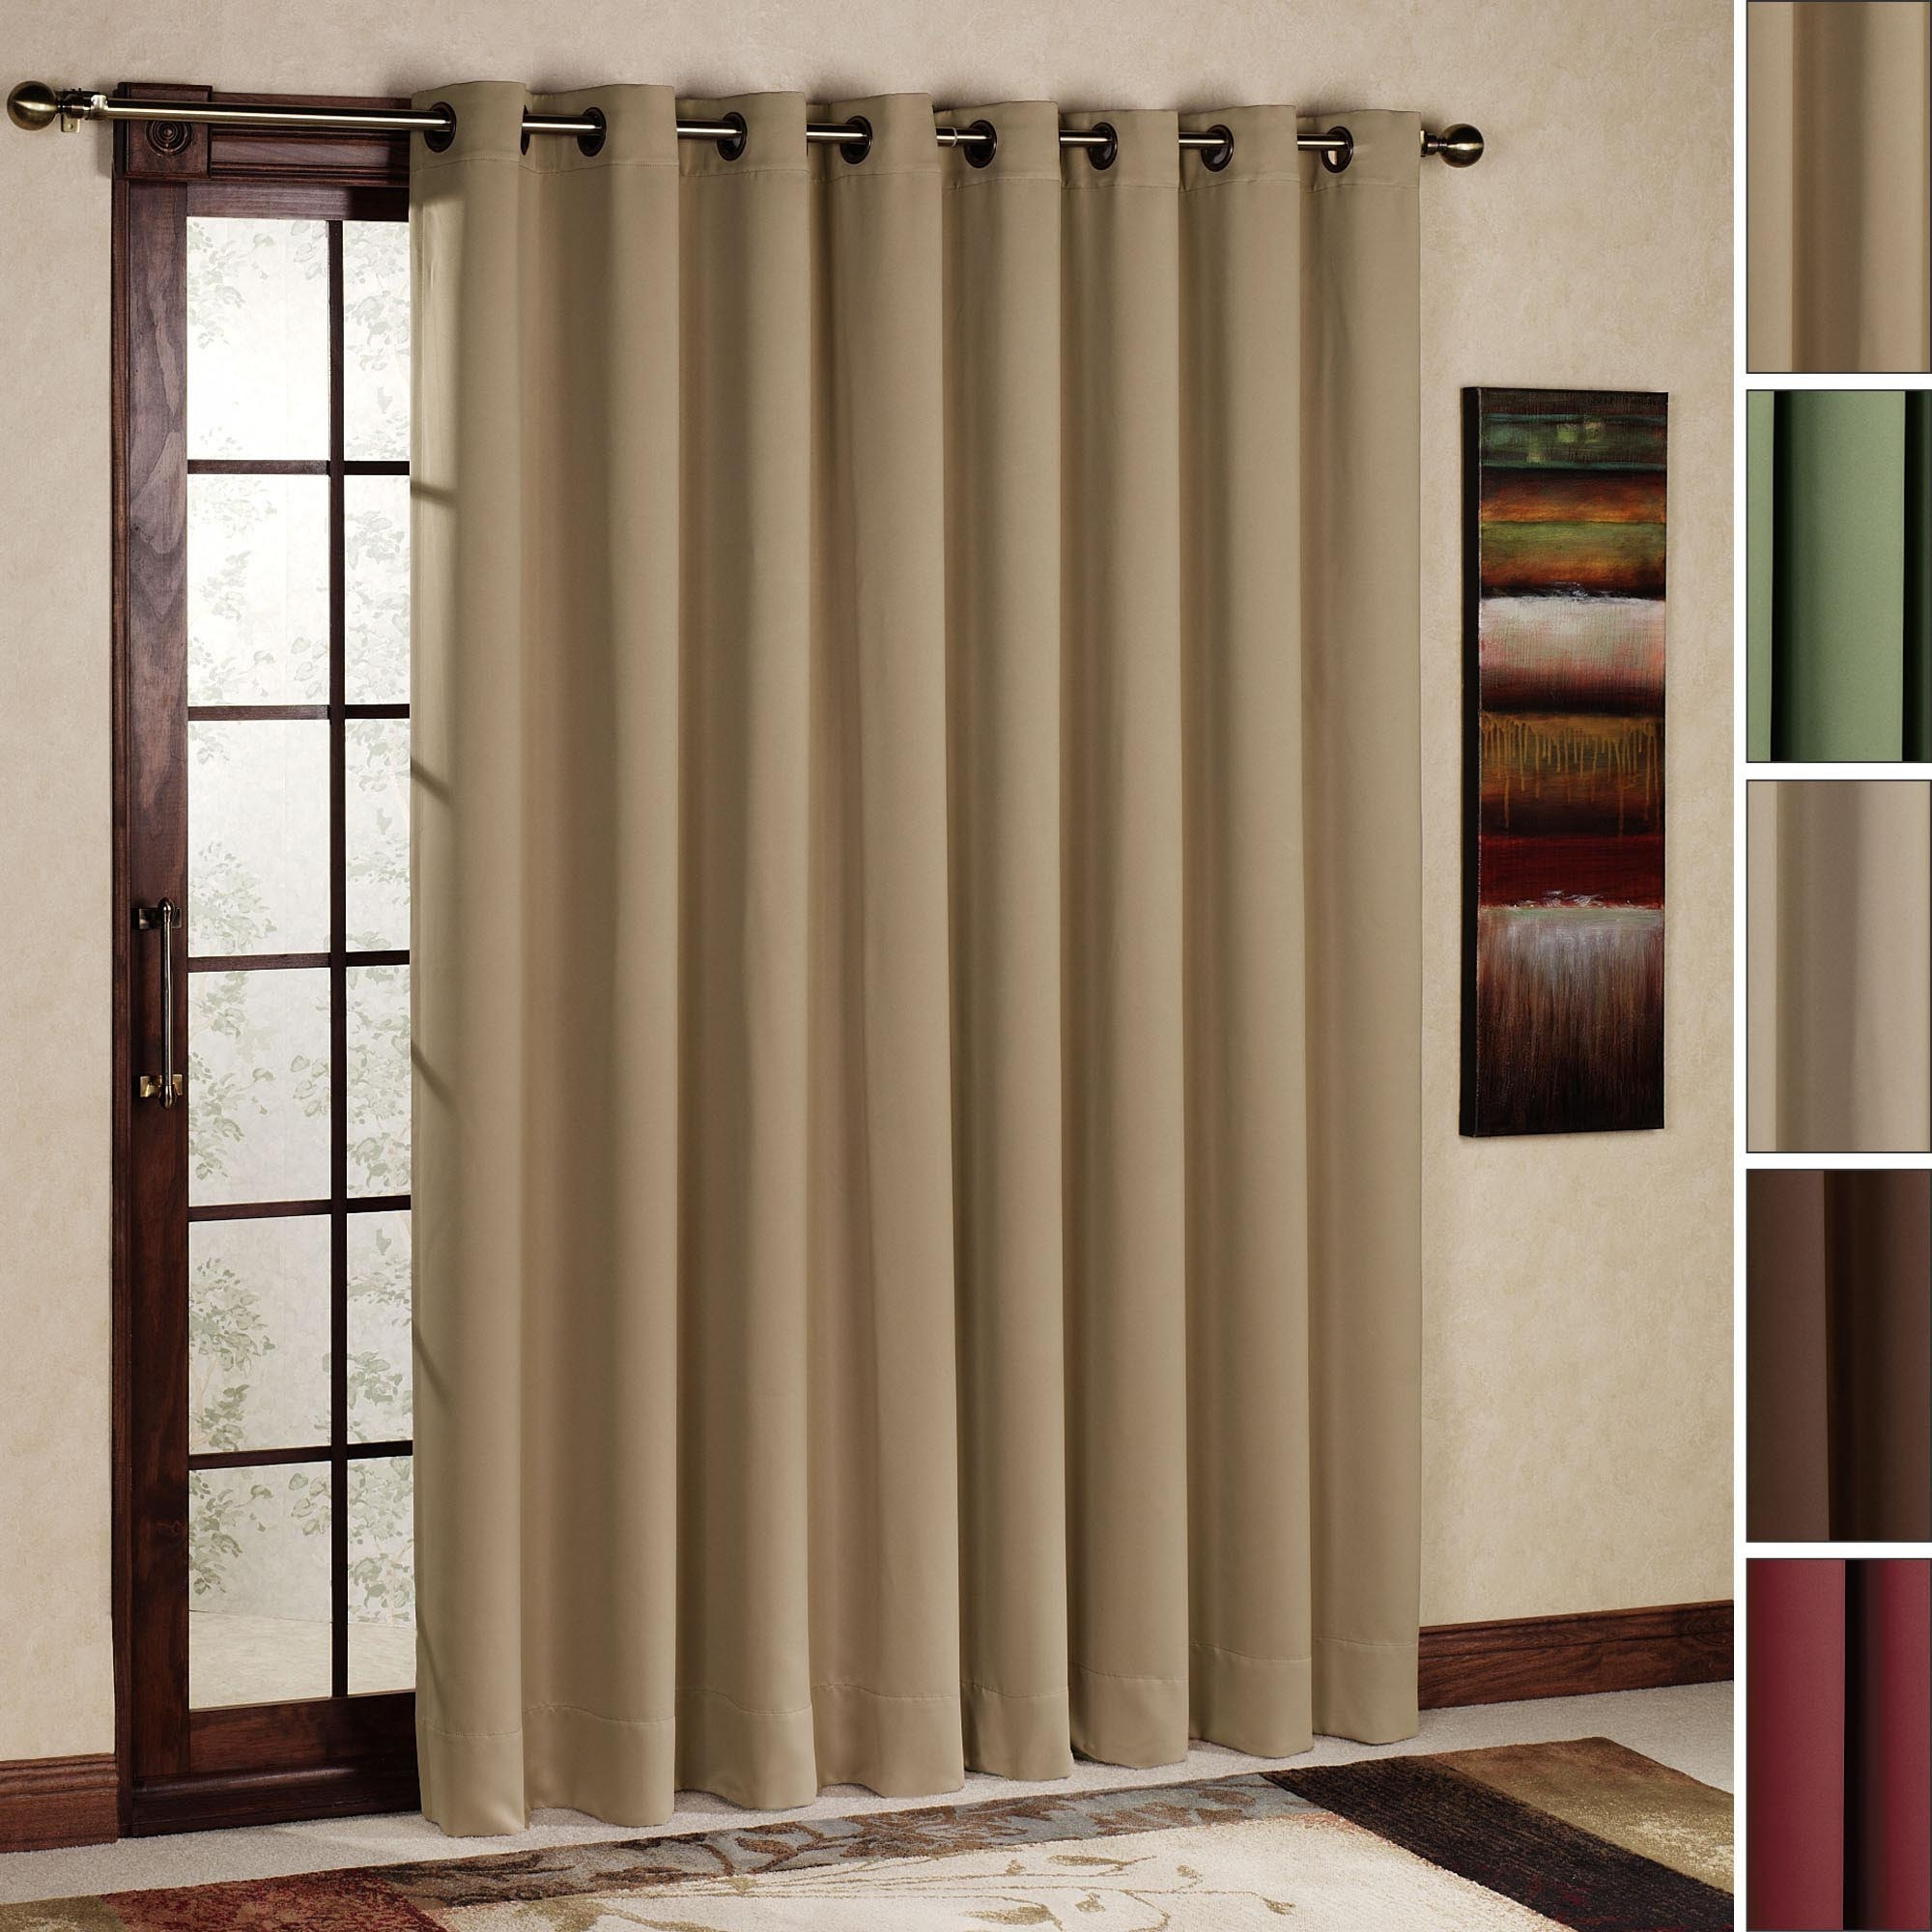 Curtains For A Sliding Glass Door Size2000 X 2000